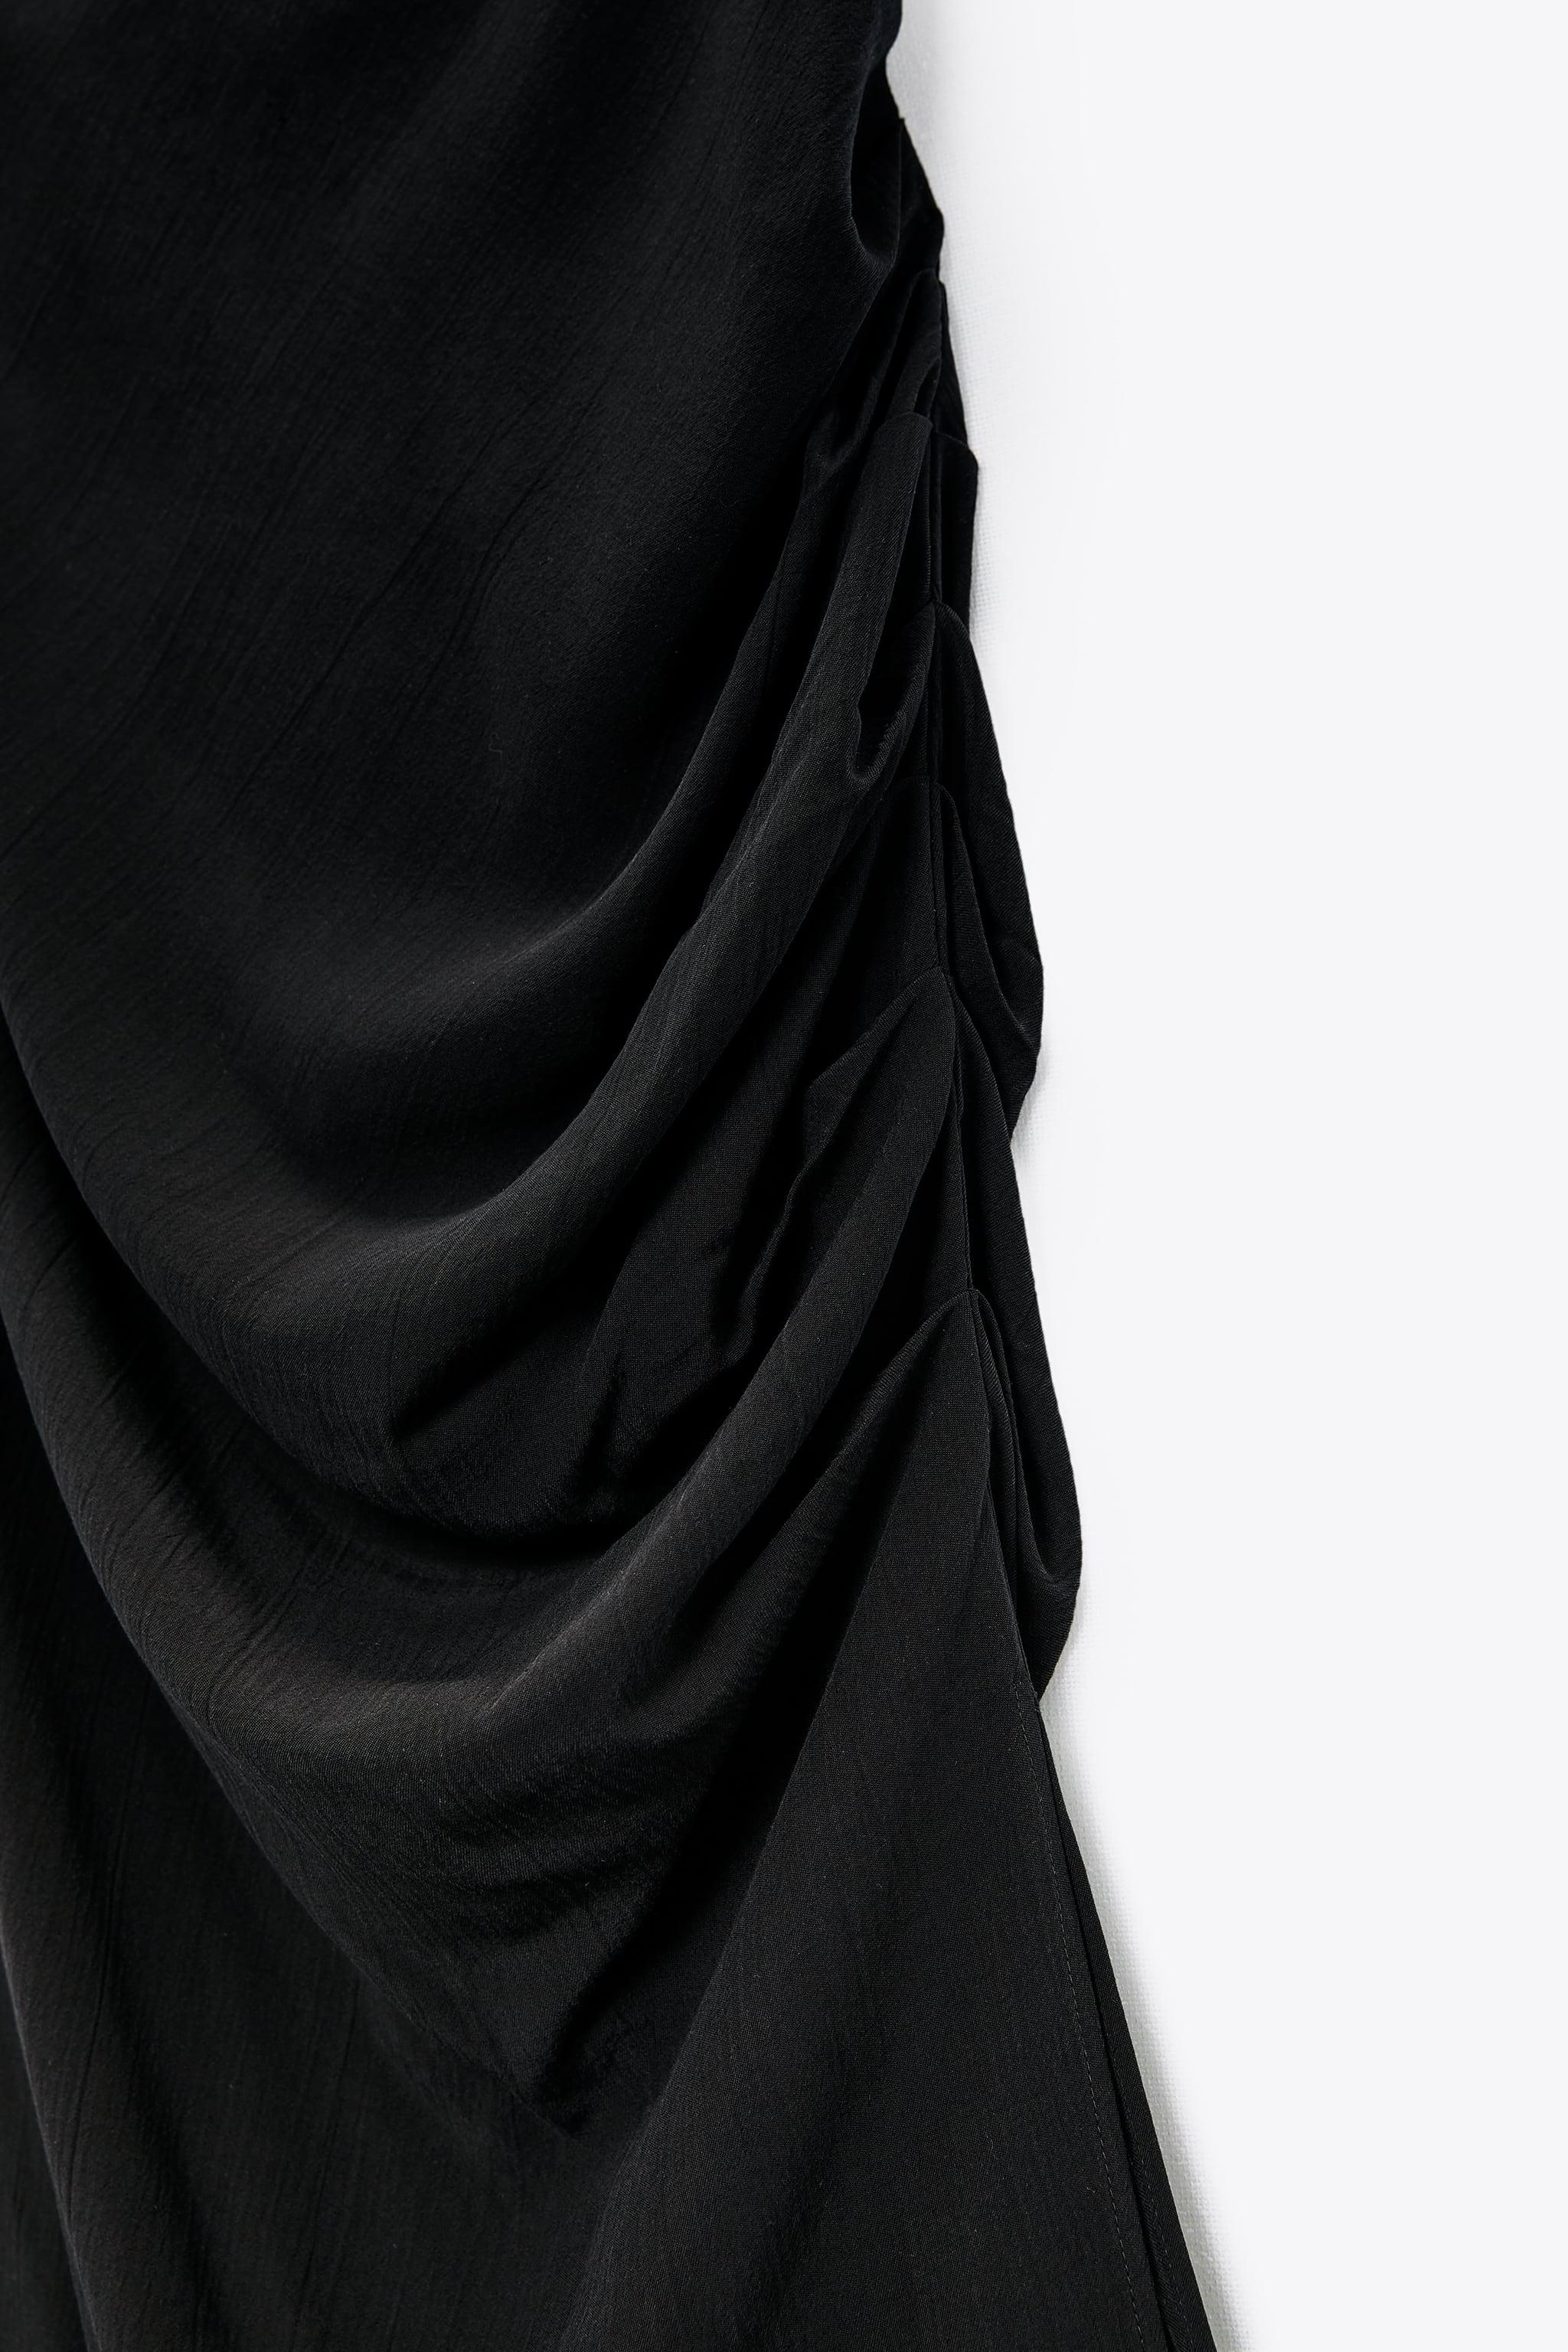 MIDI DRESS WITH OPEN BACK 7